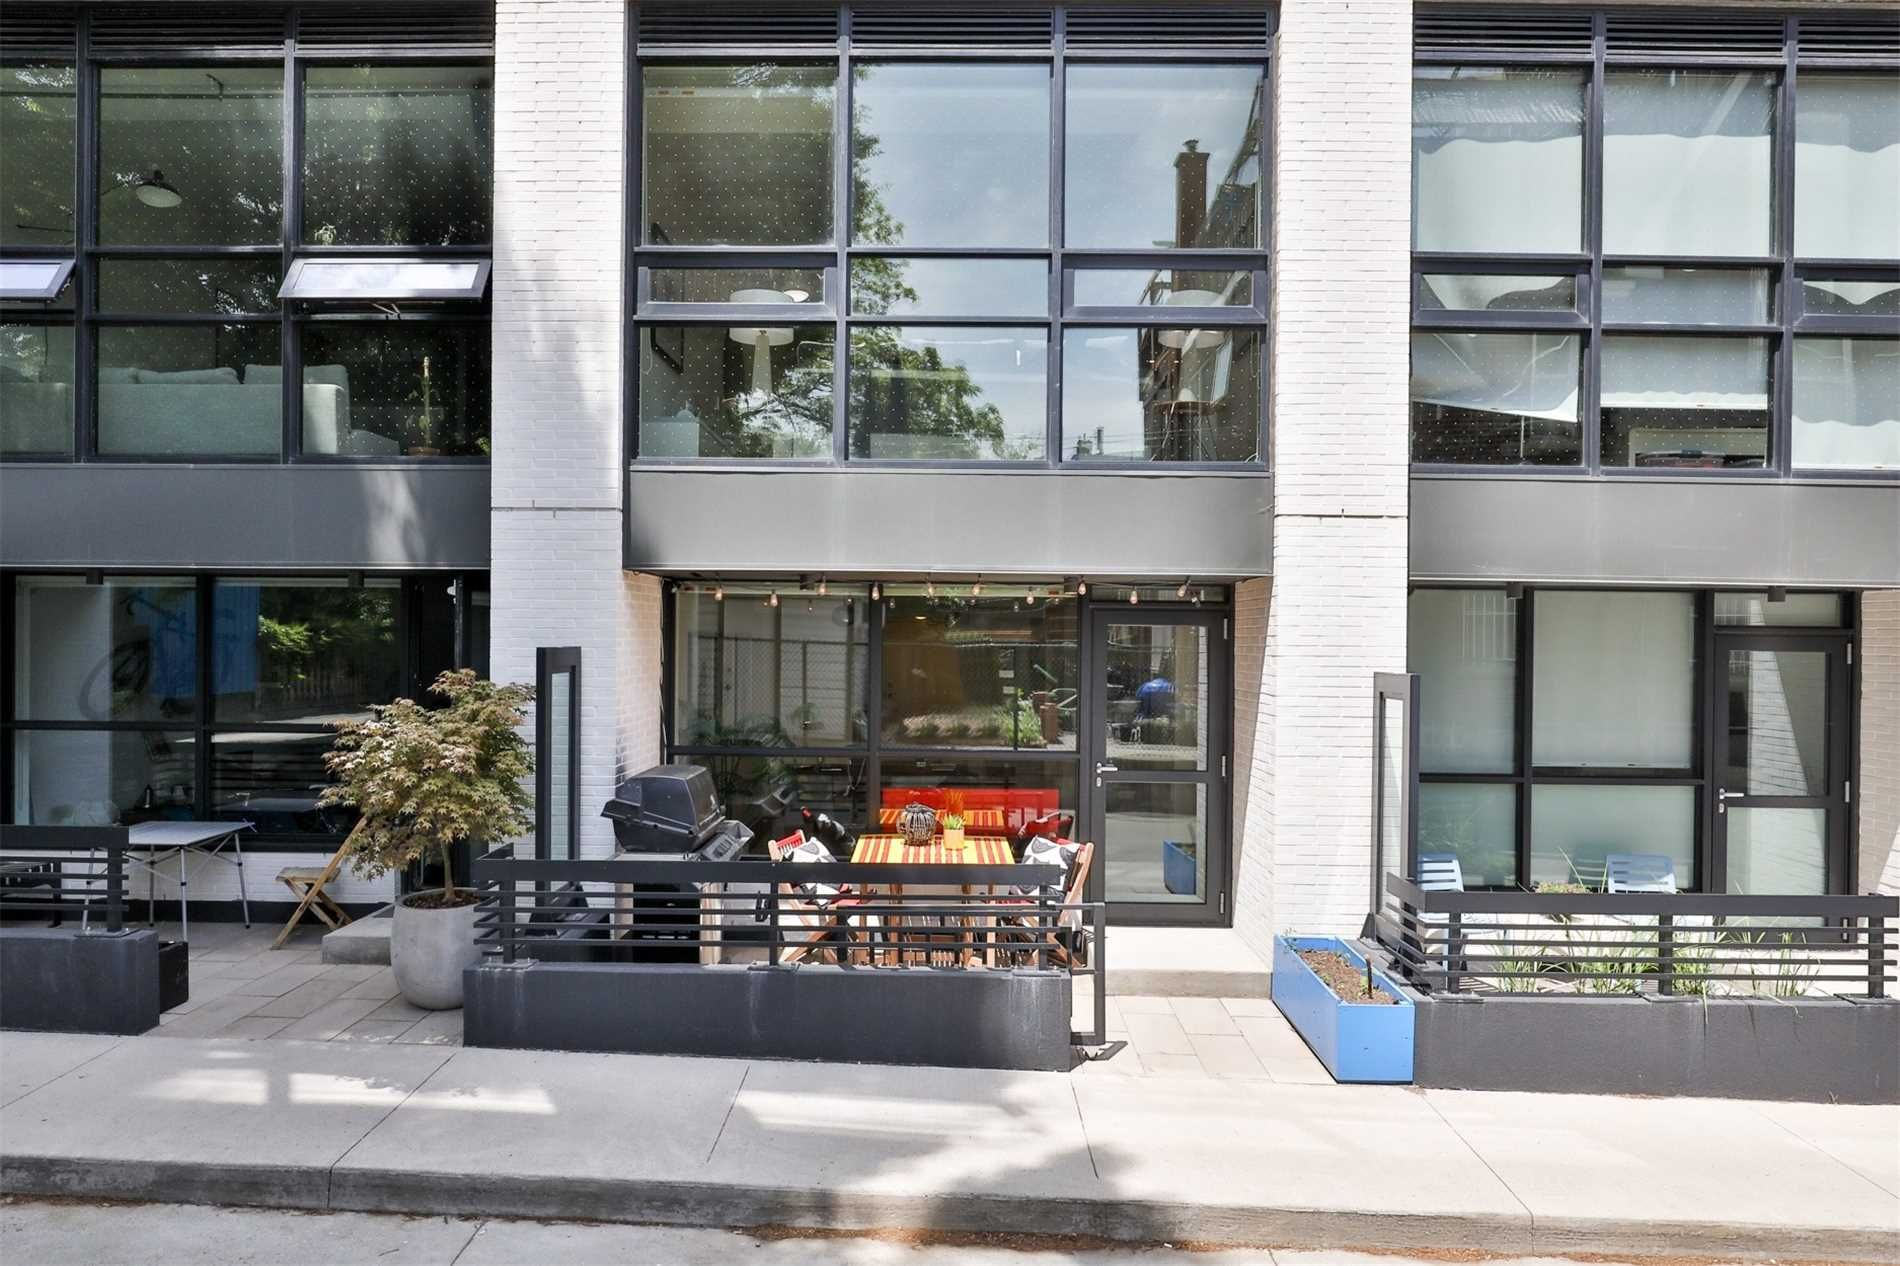 530 Indian Grve, unit 105 for sale in Toronto - image #1